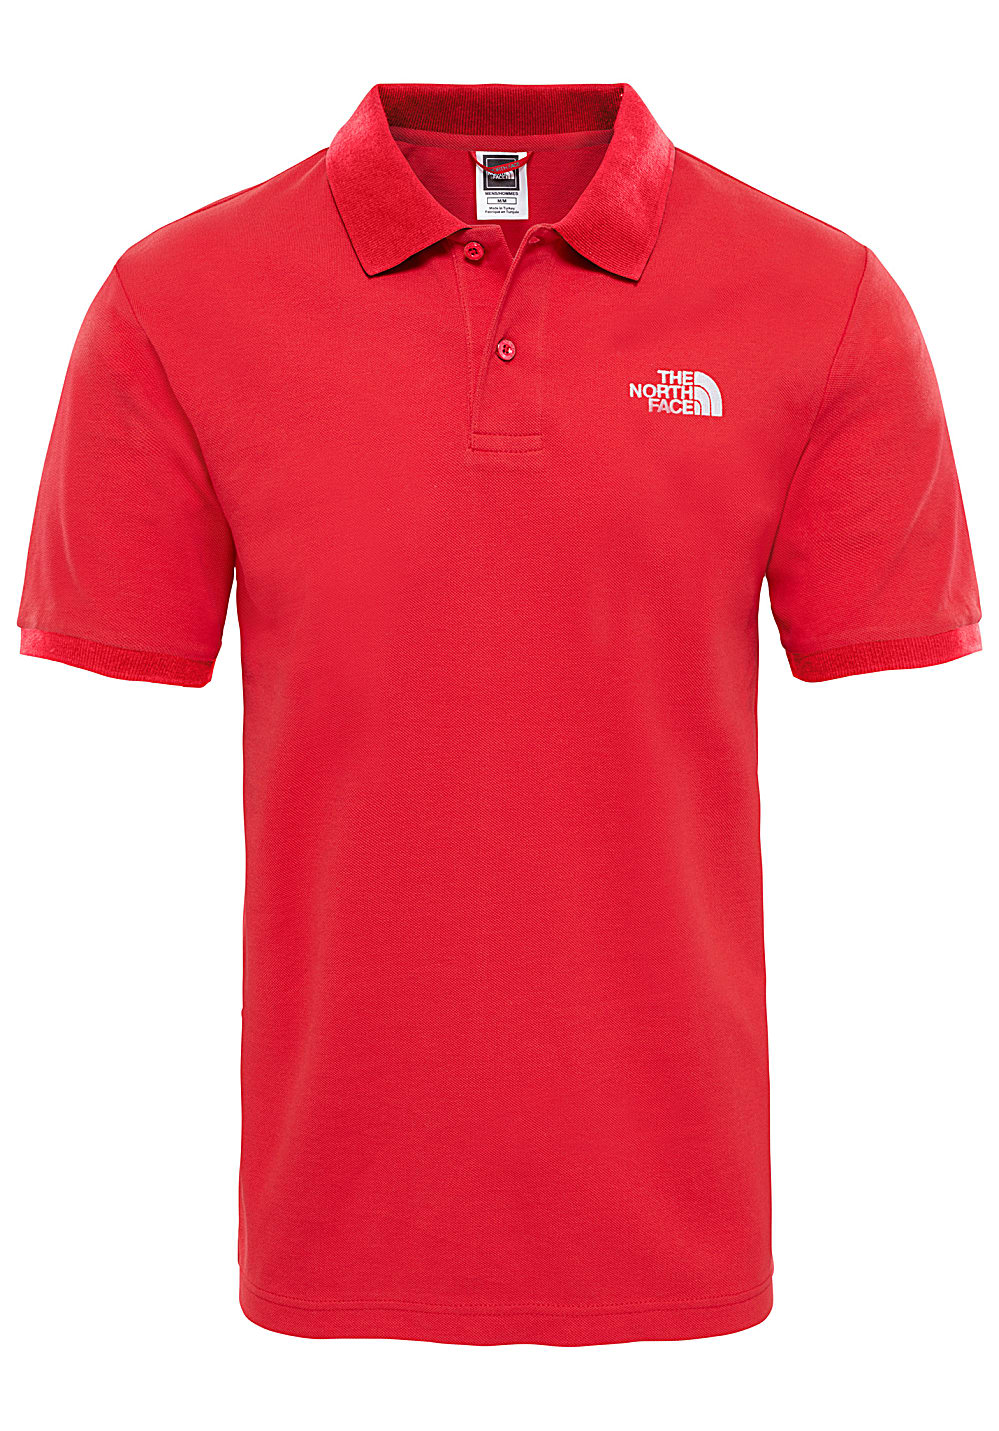 c027a5fae THE NORTH FACE Piquet - Polo Shirt for Men - Red